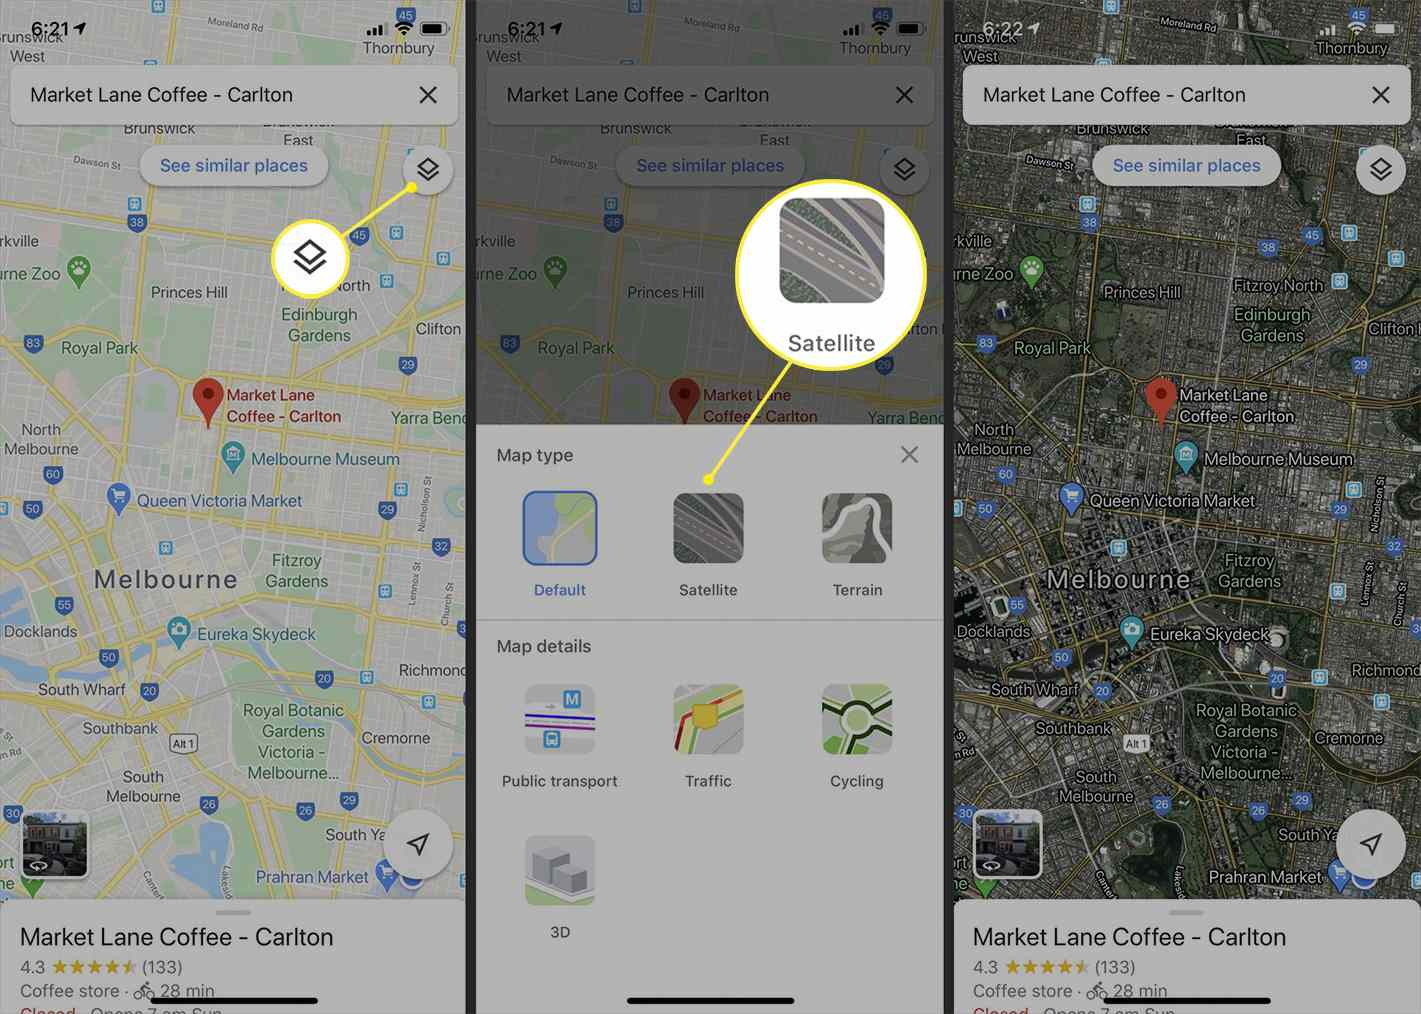 Google Maps style options in the iPhone Google Maps app